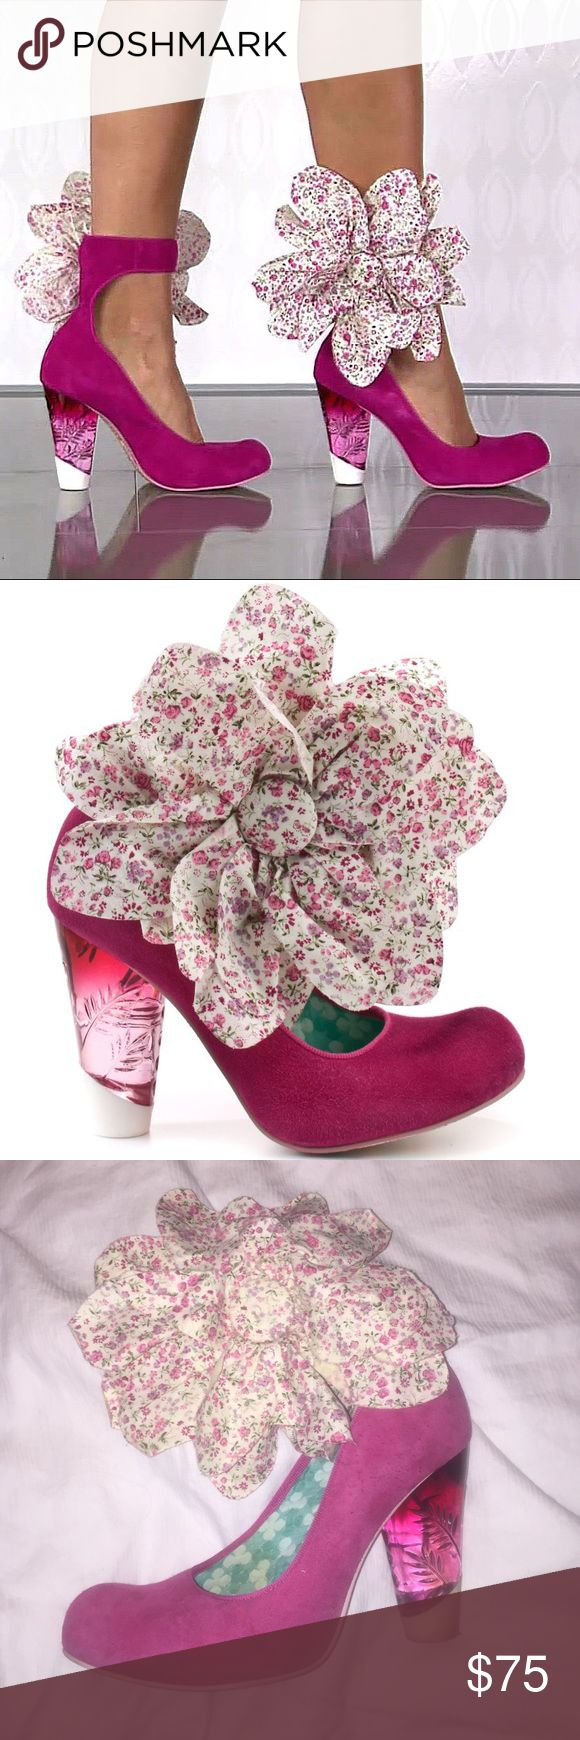 "Irregular Choice Specialzo Floral Pink suede Heels This is an amazing pair of Irregular Choice Specialzo pink suede heels. Size 7 heel 3.5"" wraps around the ankle and closes with Velcro. Good condition. Irregular choice Shoes Heels"